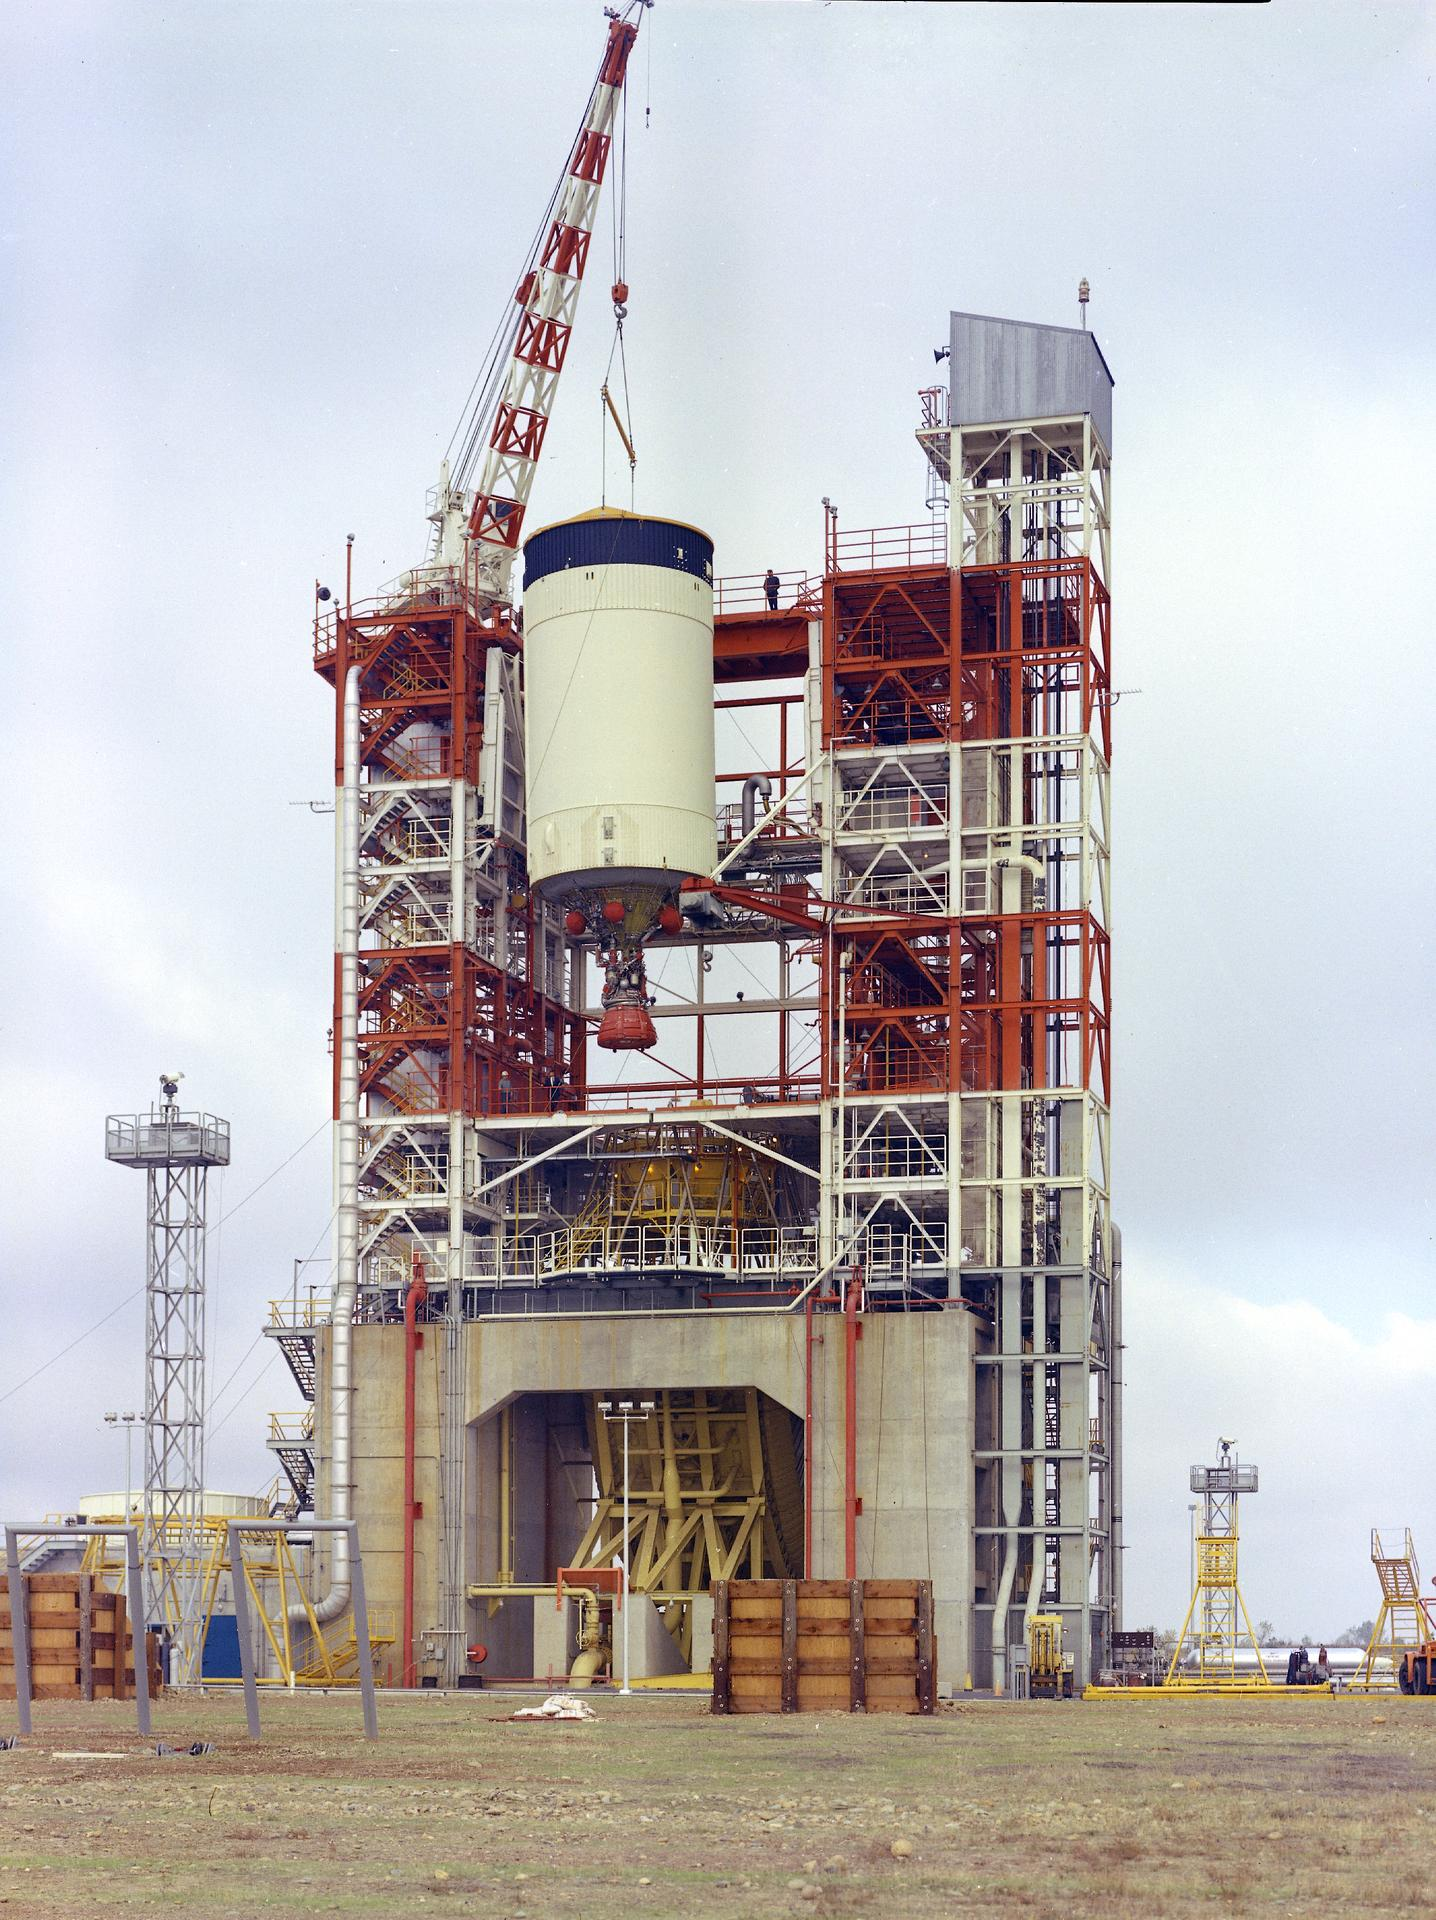 The Apollo 10 S-IVB stage being hoisted out of the Beta Test Stand 1 at SACTO after its static firing. (Source: NASA)